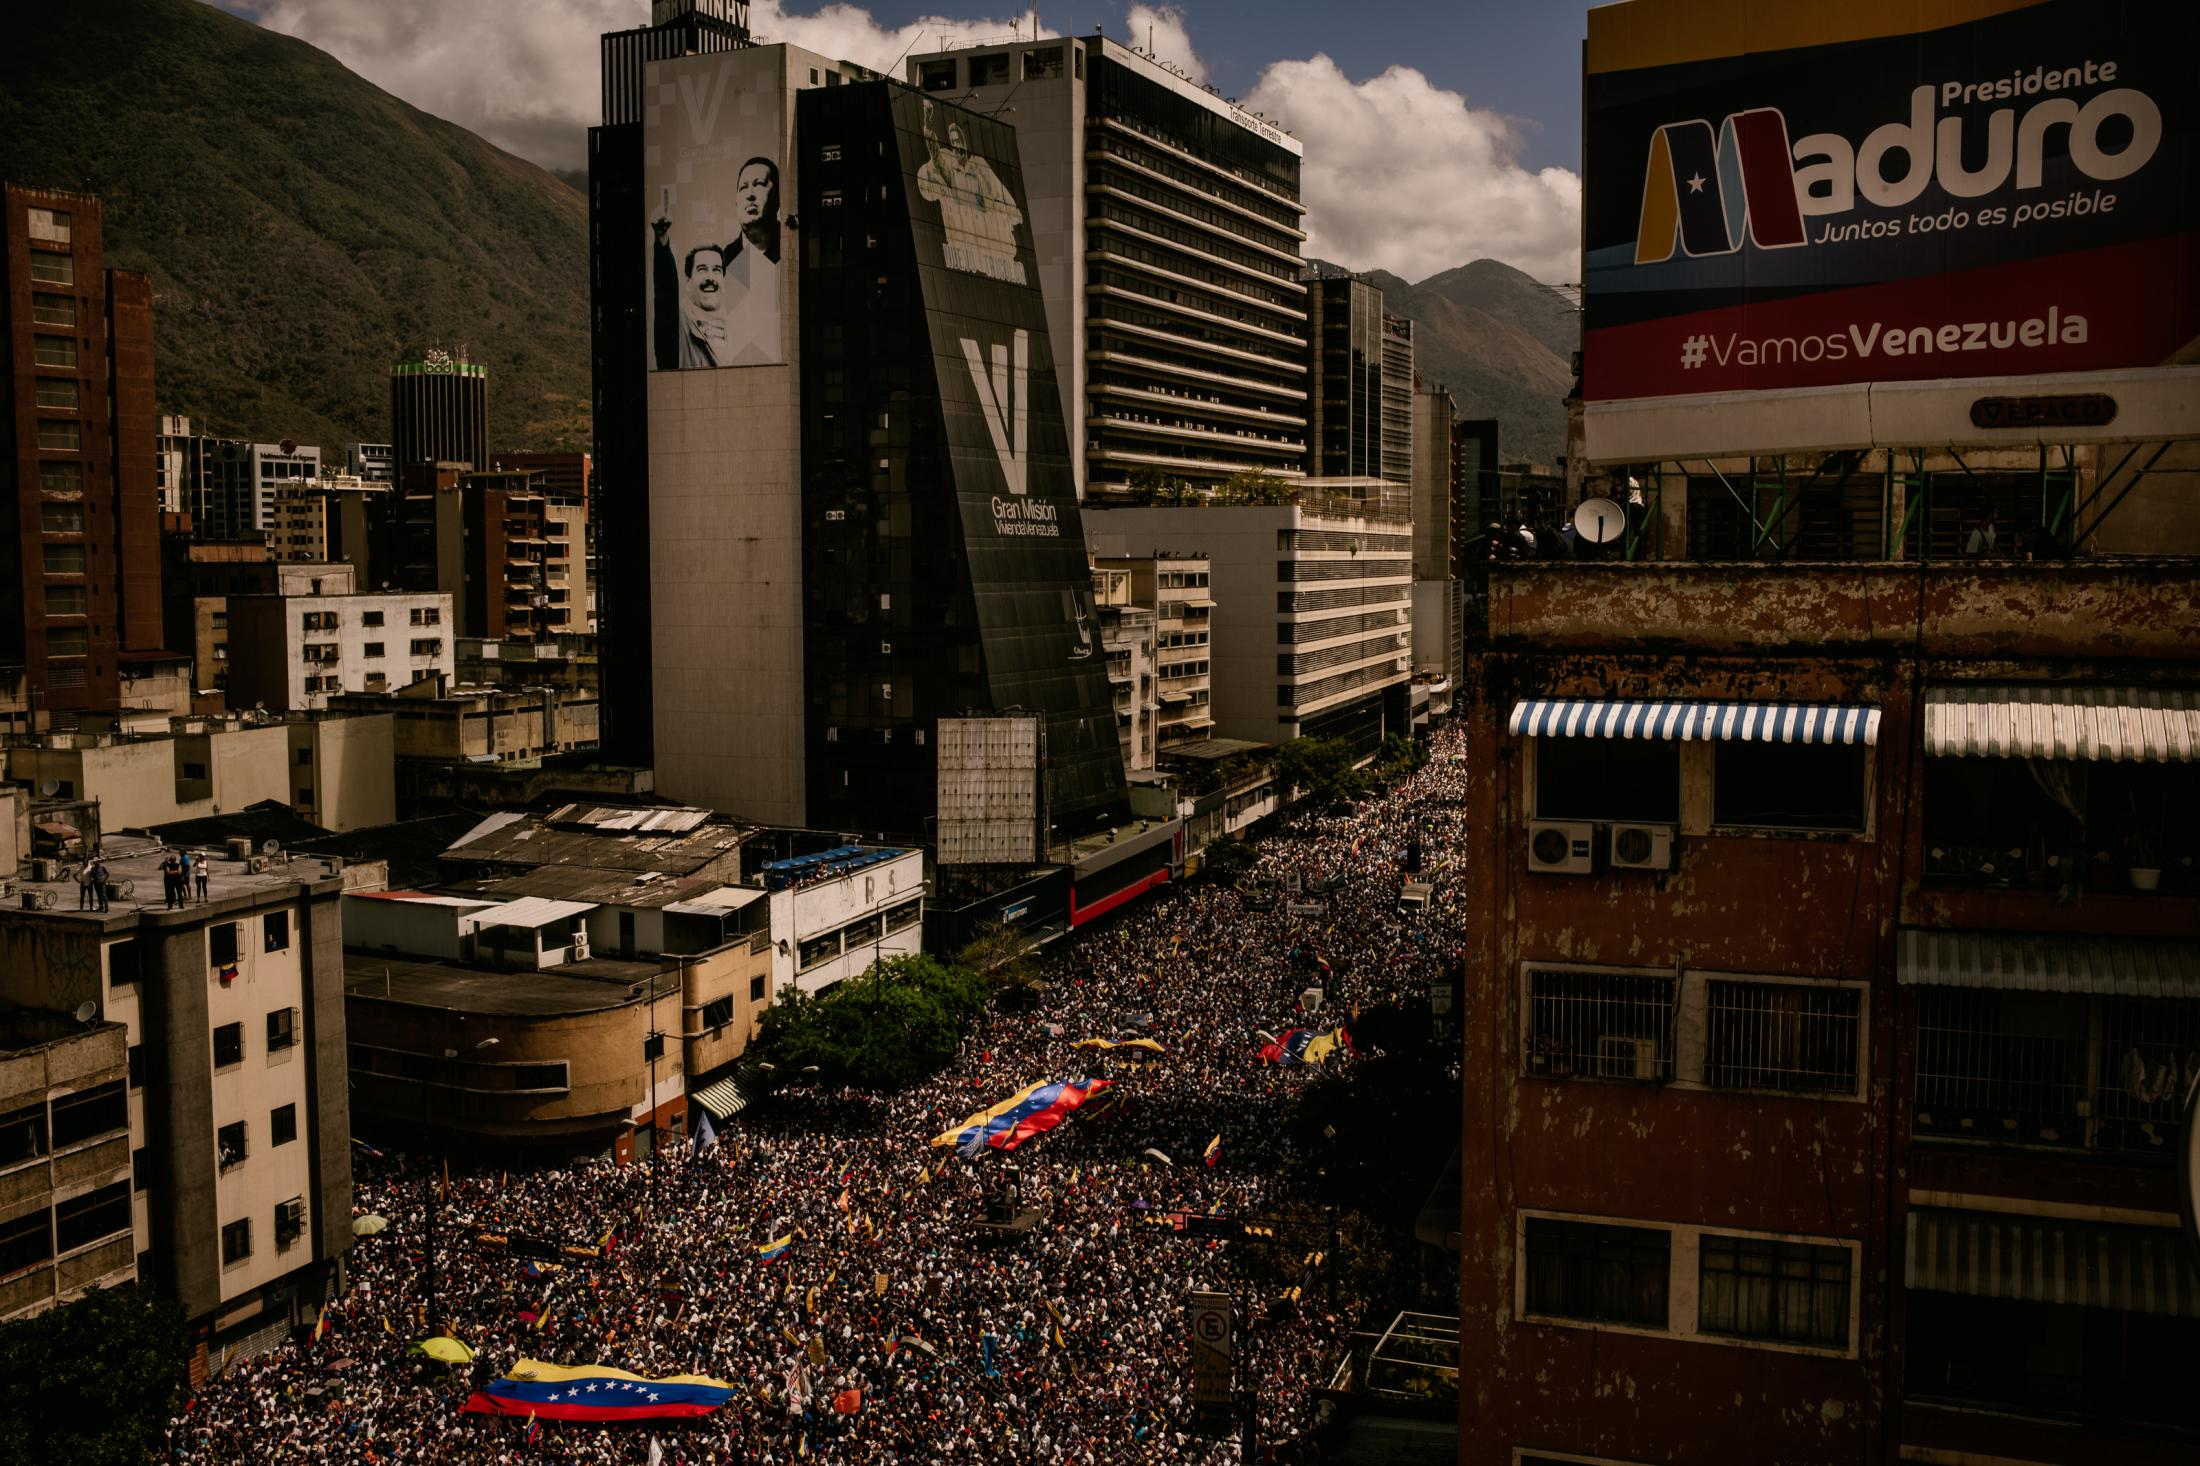 Hundreds of thousand of Venezuelans gathered in Chacao, East Caracas, to Celebrate National Youth Day and to call on the military to allow international aid to enter the country. Caracas, Venezuela. 12th February 2019. The crowd is also waiting for the appearance of Juan Guaidó, self-proclaimed acting President of Venezuela and opposition leader. The protests and marches against Maduro´s government have been taking place regularly all over the country since 2014.